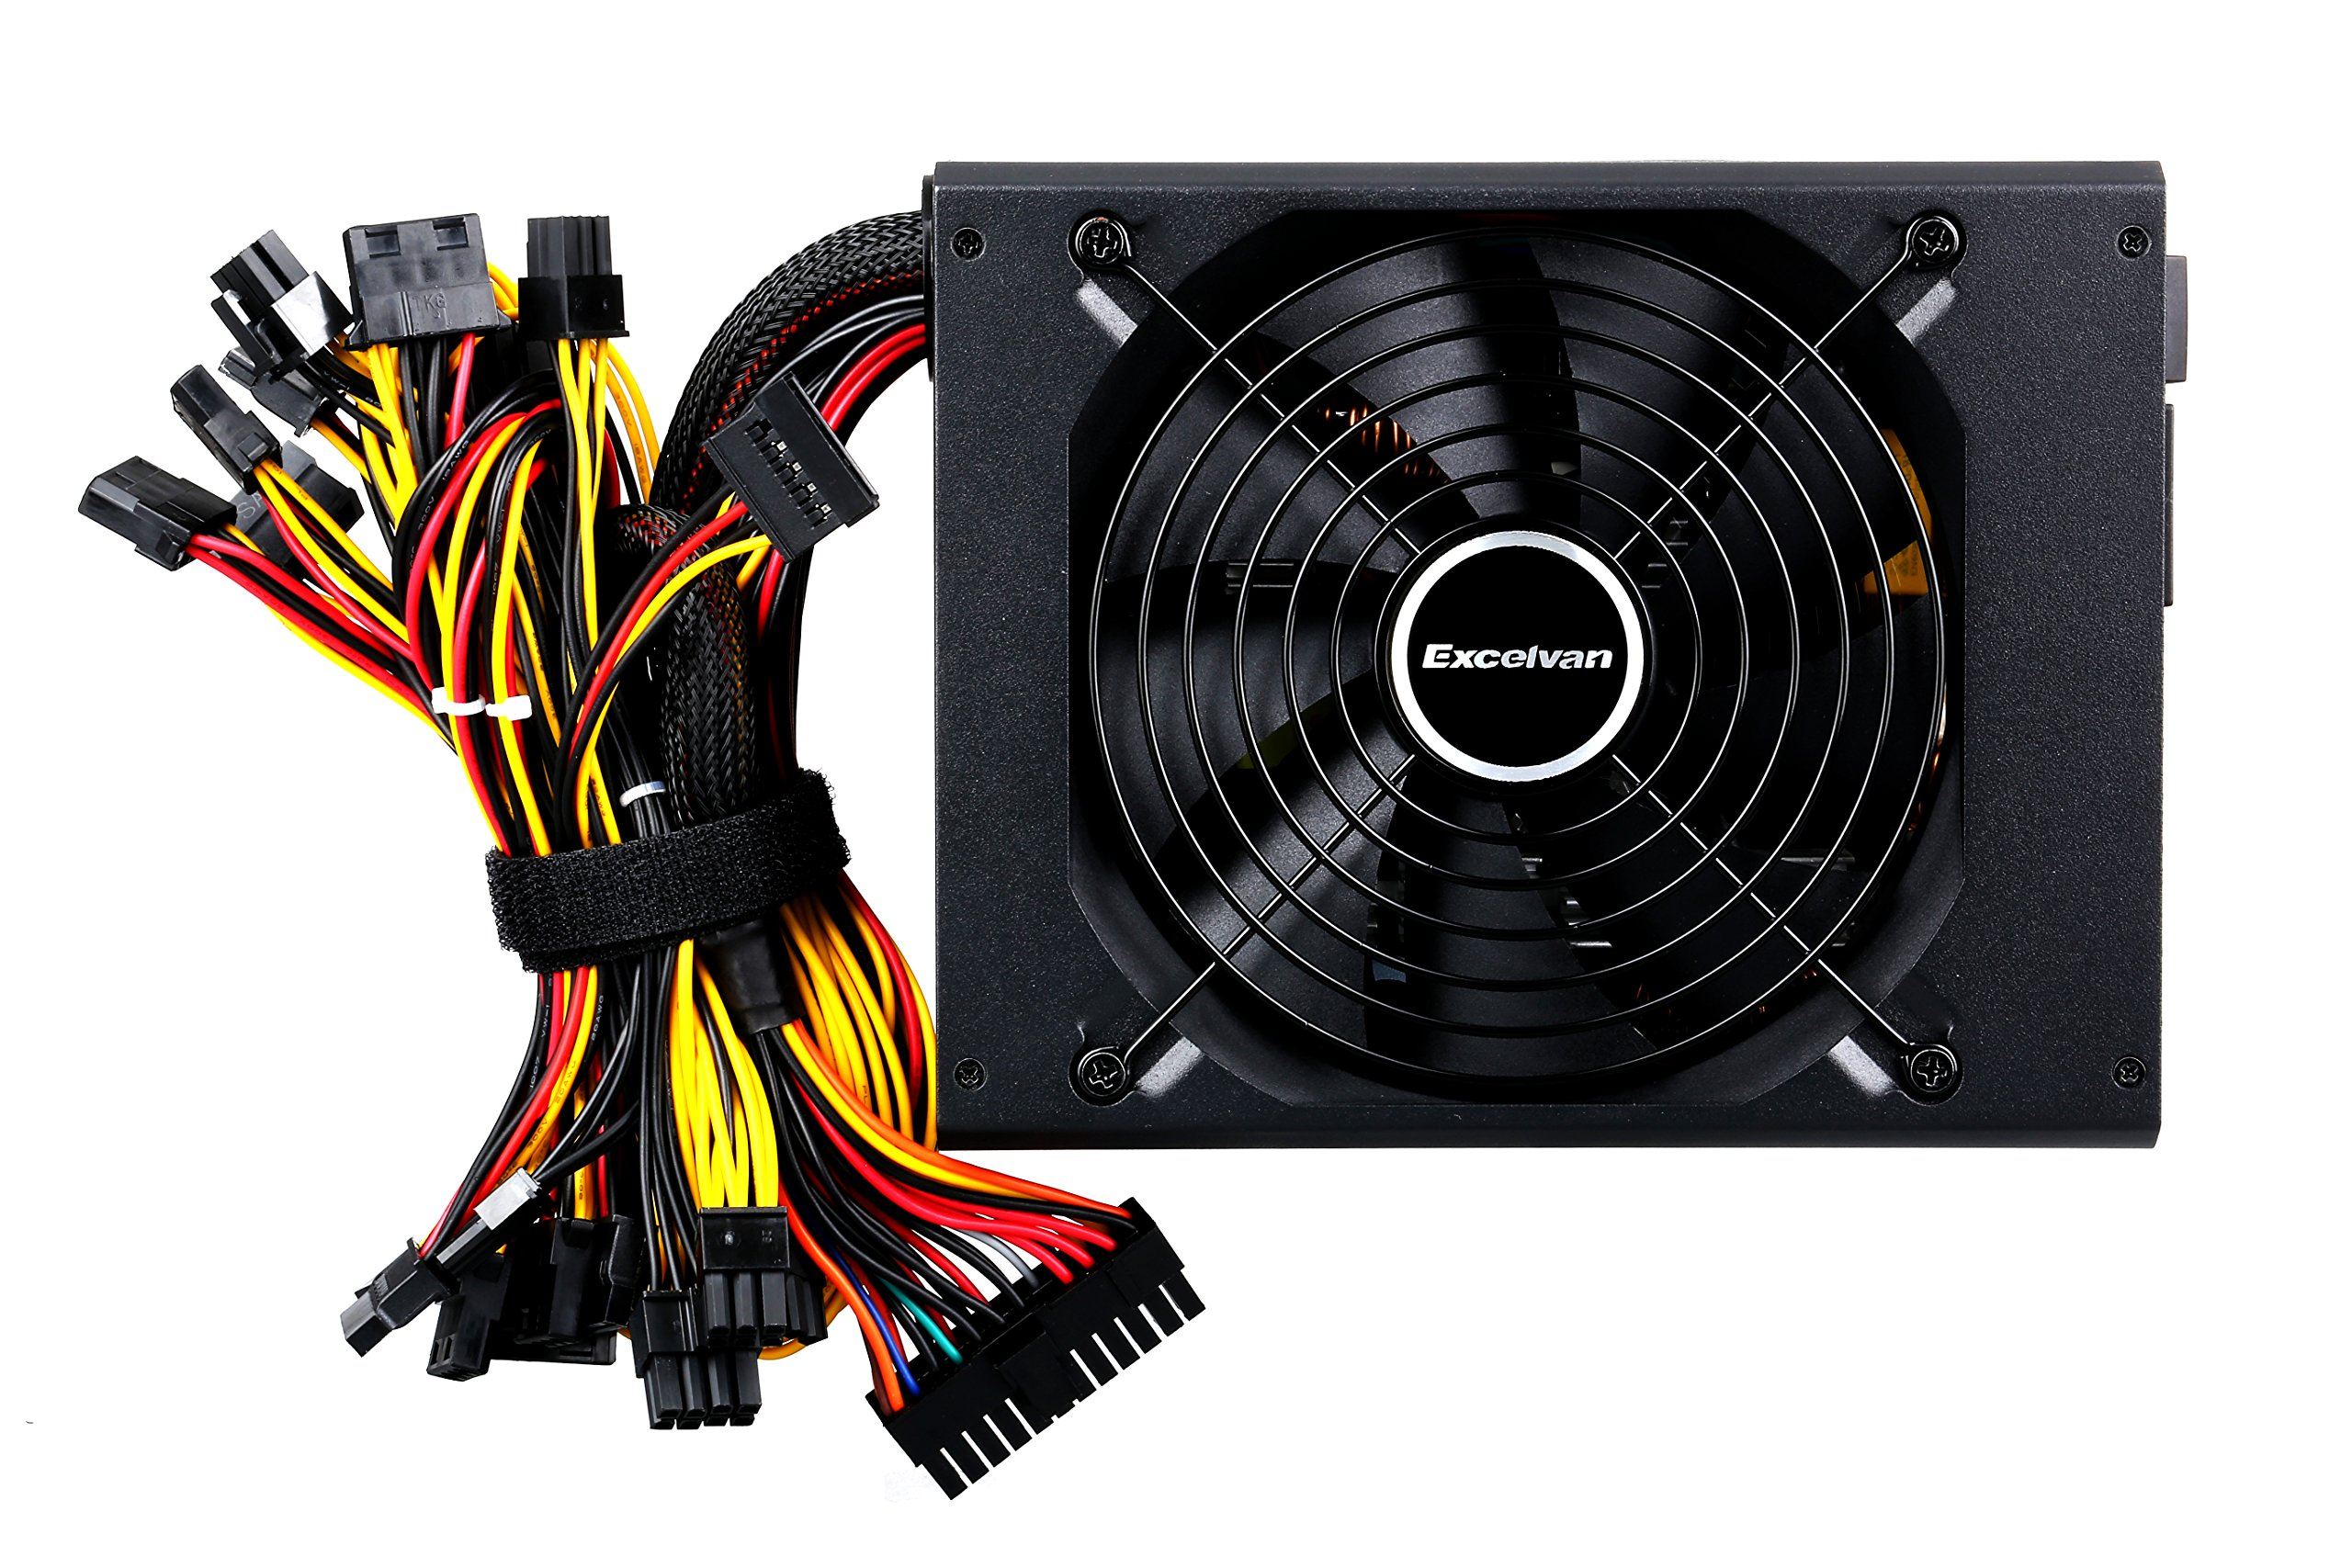 Excelvan ATX Computer Power Supply Desktop PC for Intel AMD PC SATA US (800W) by Excelvan (Image #10)